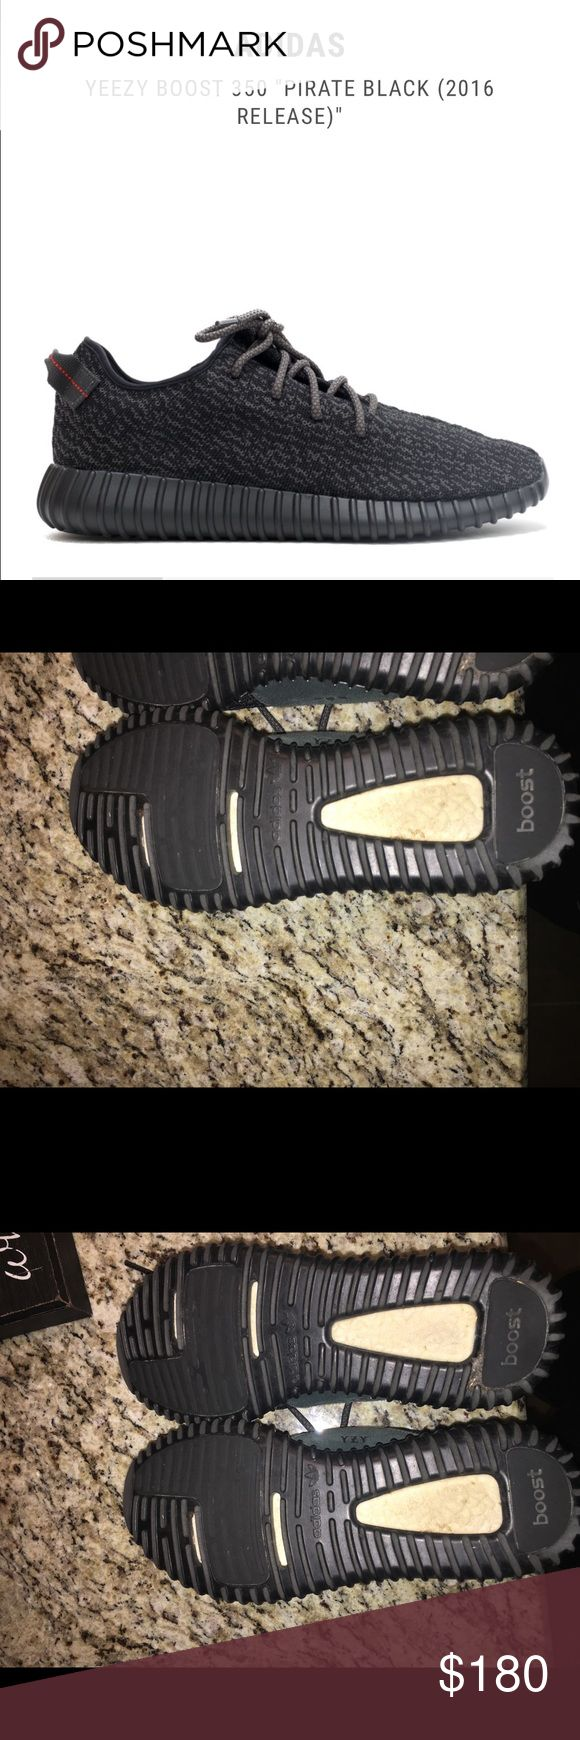 Version 1 pirate black Kanye West Yeezy Adidas Gently worn and in great condion. Very comfortable and a great price! 9 in womens Yeezy Shoes